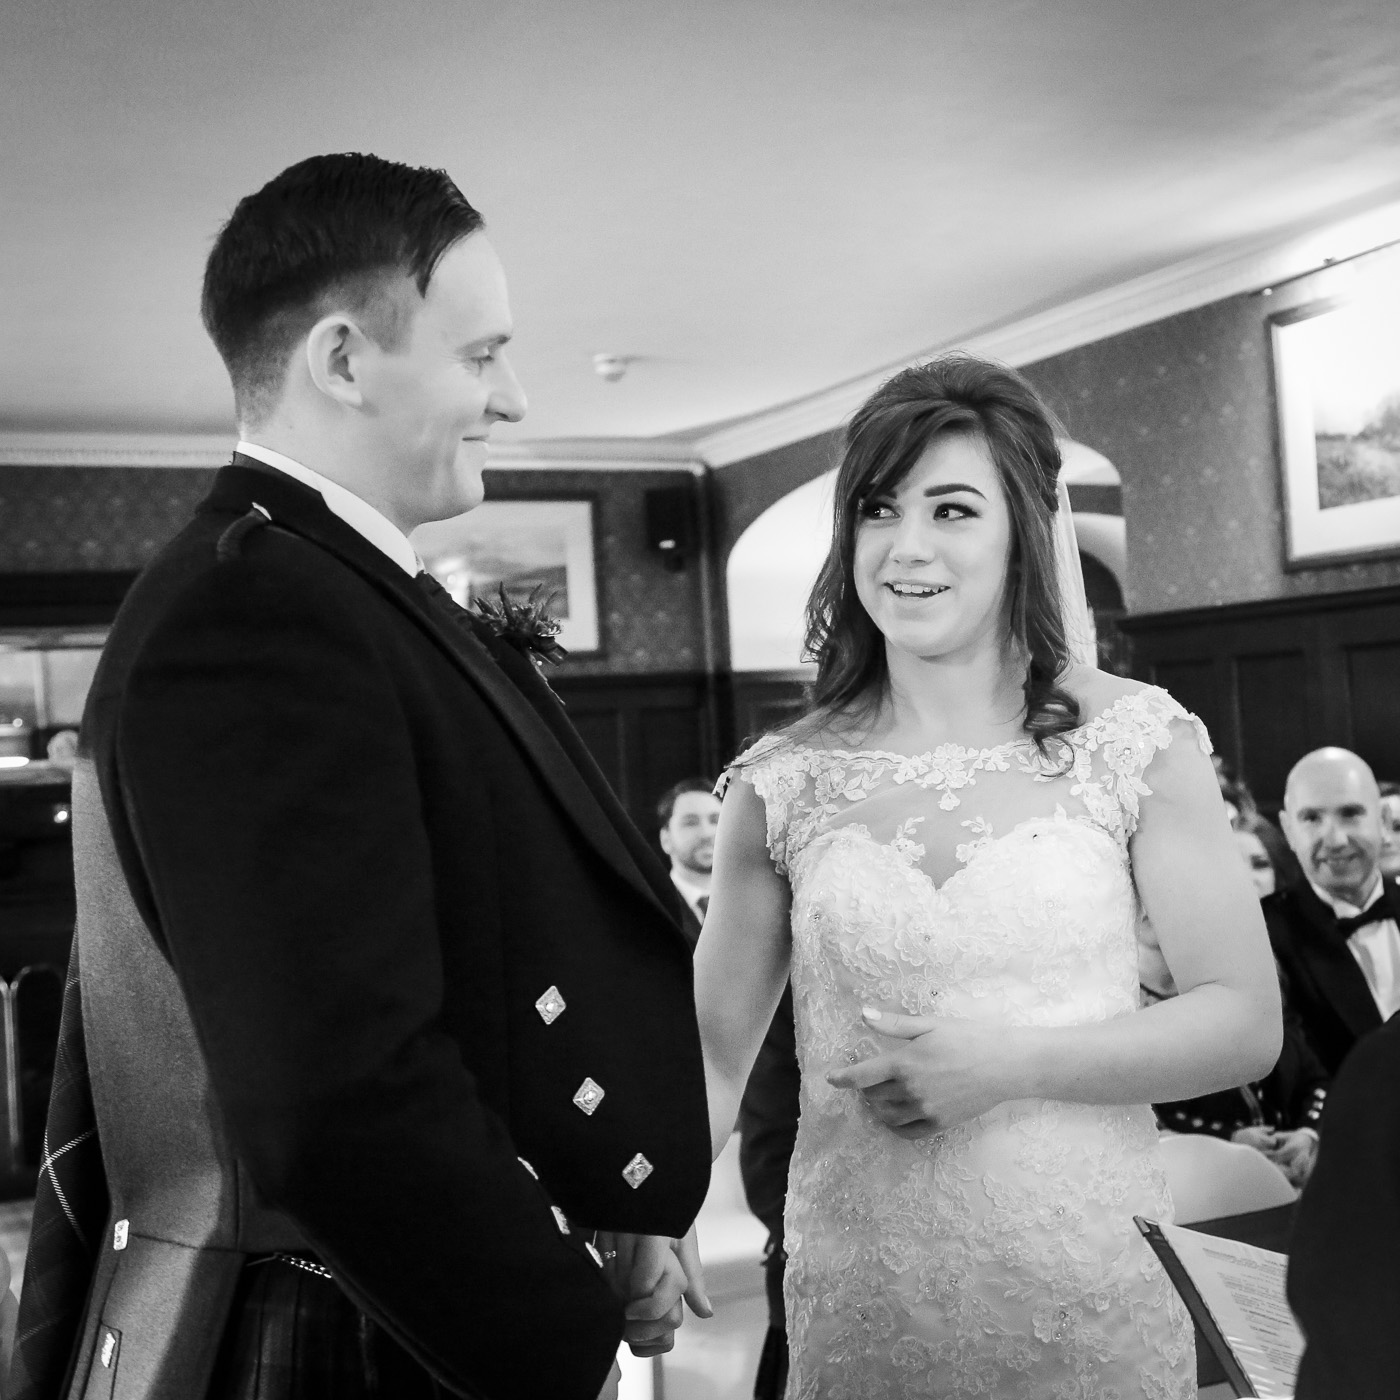 wedding-photography-at-bunchrew-house-inverness-8926-2